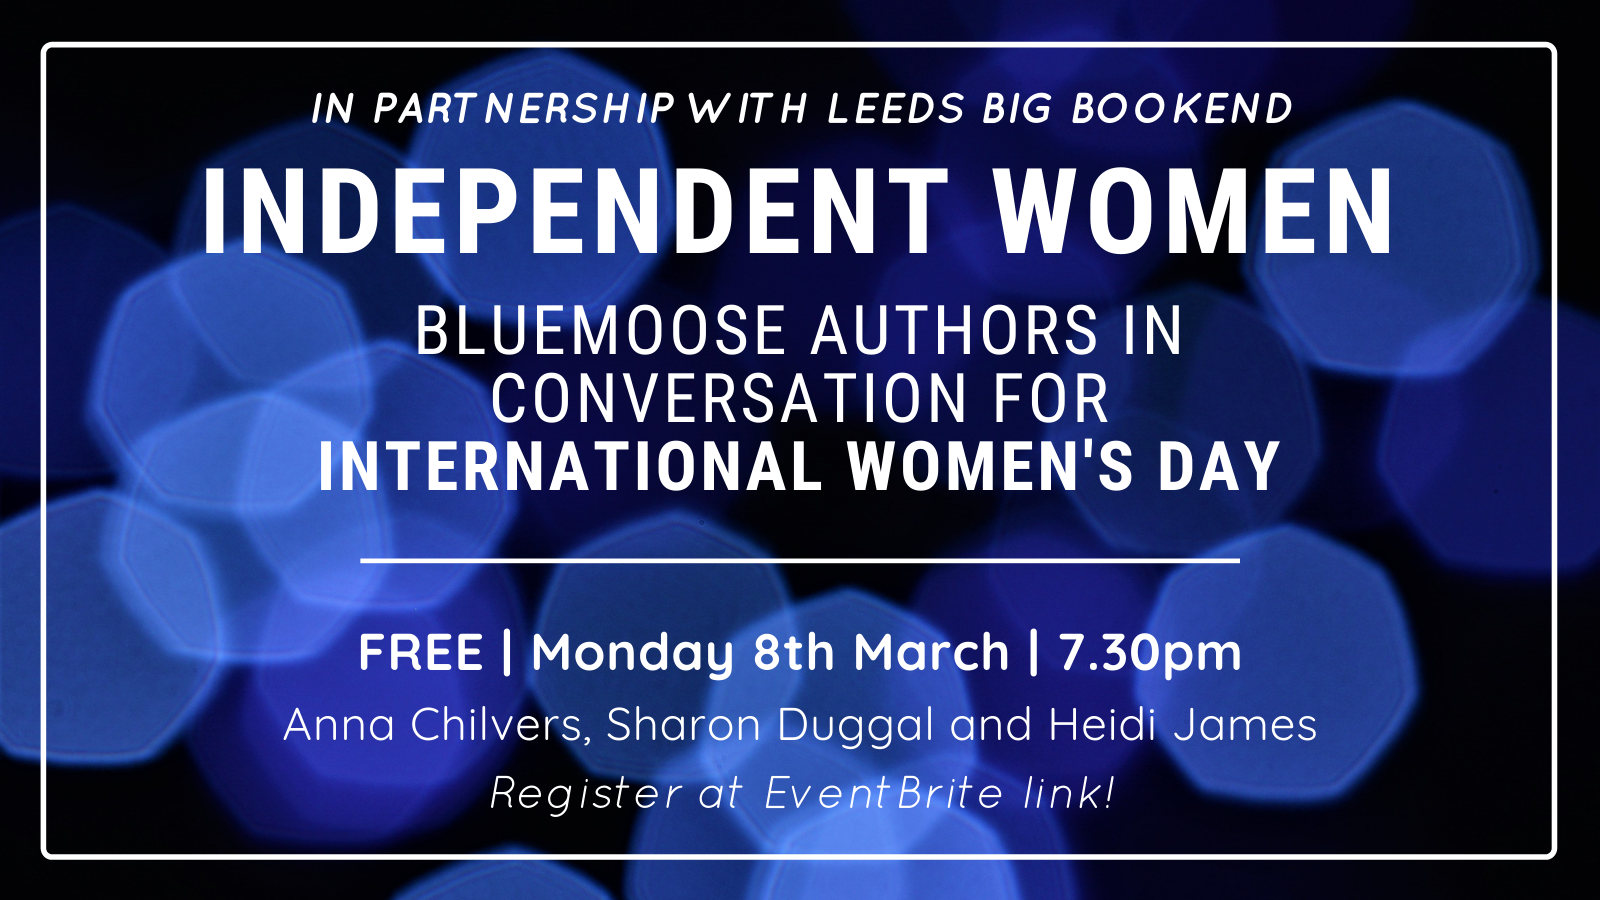 Independent Women. Bluemoose authors for International Women's Day - 8th March, 7.30pm